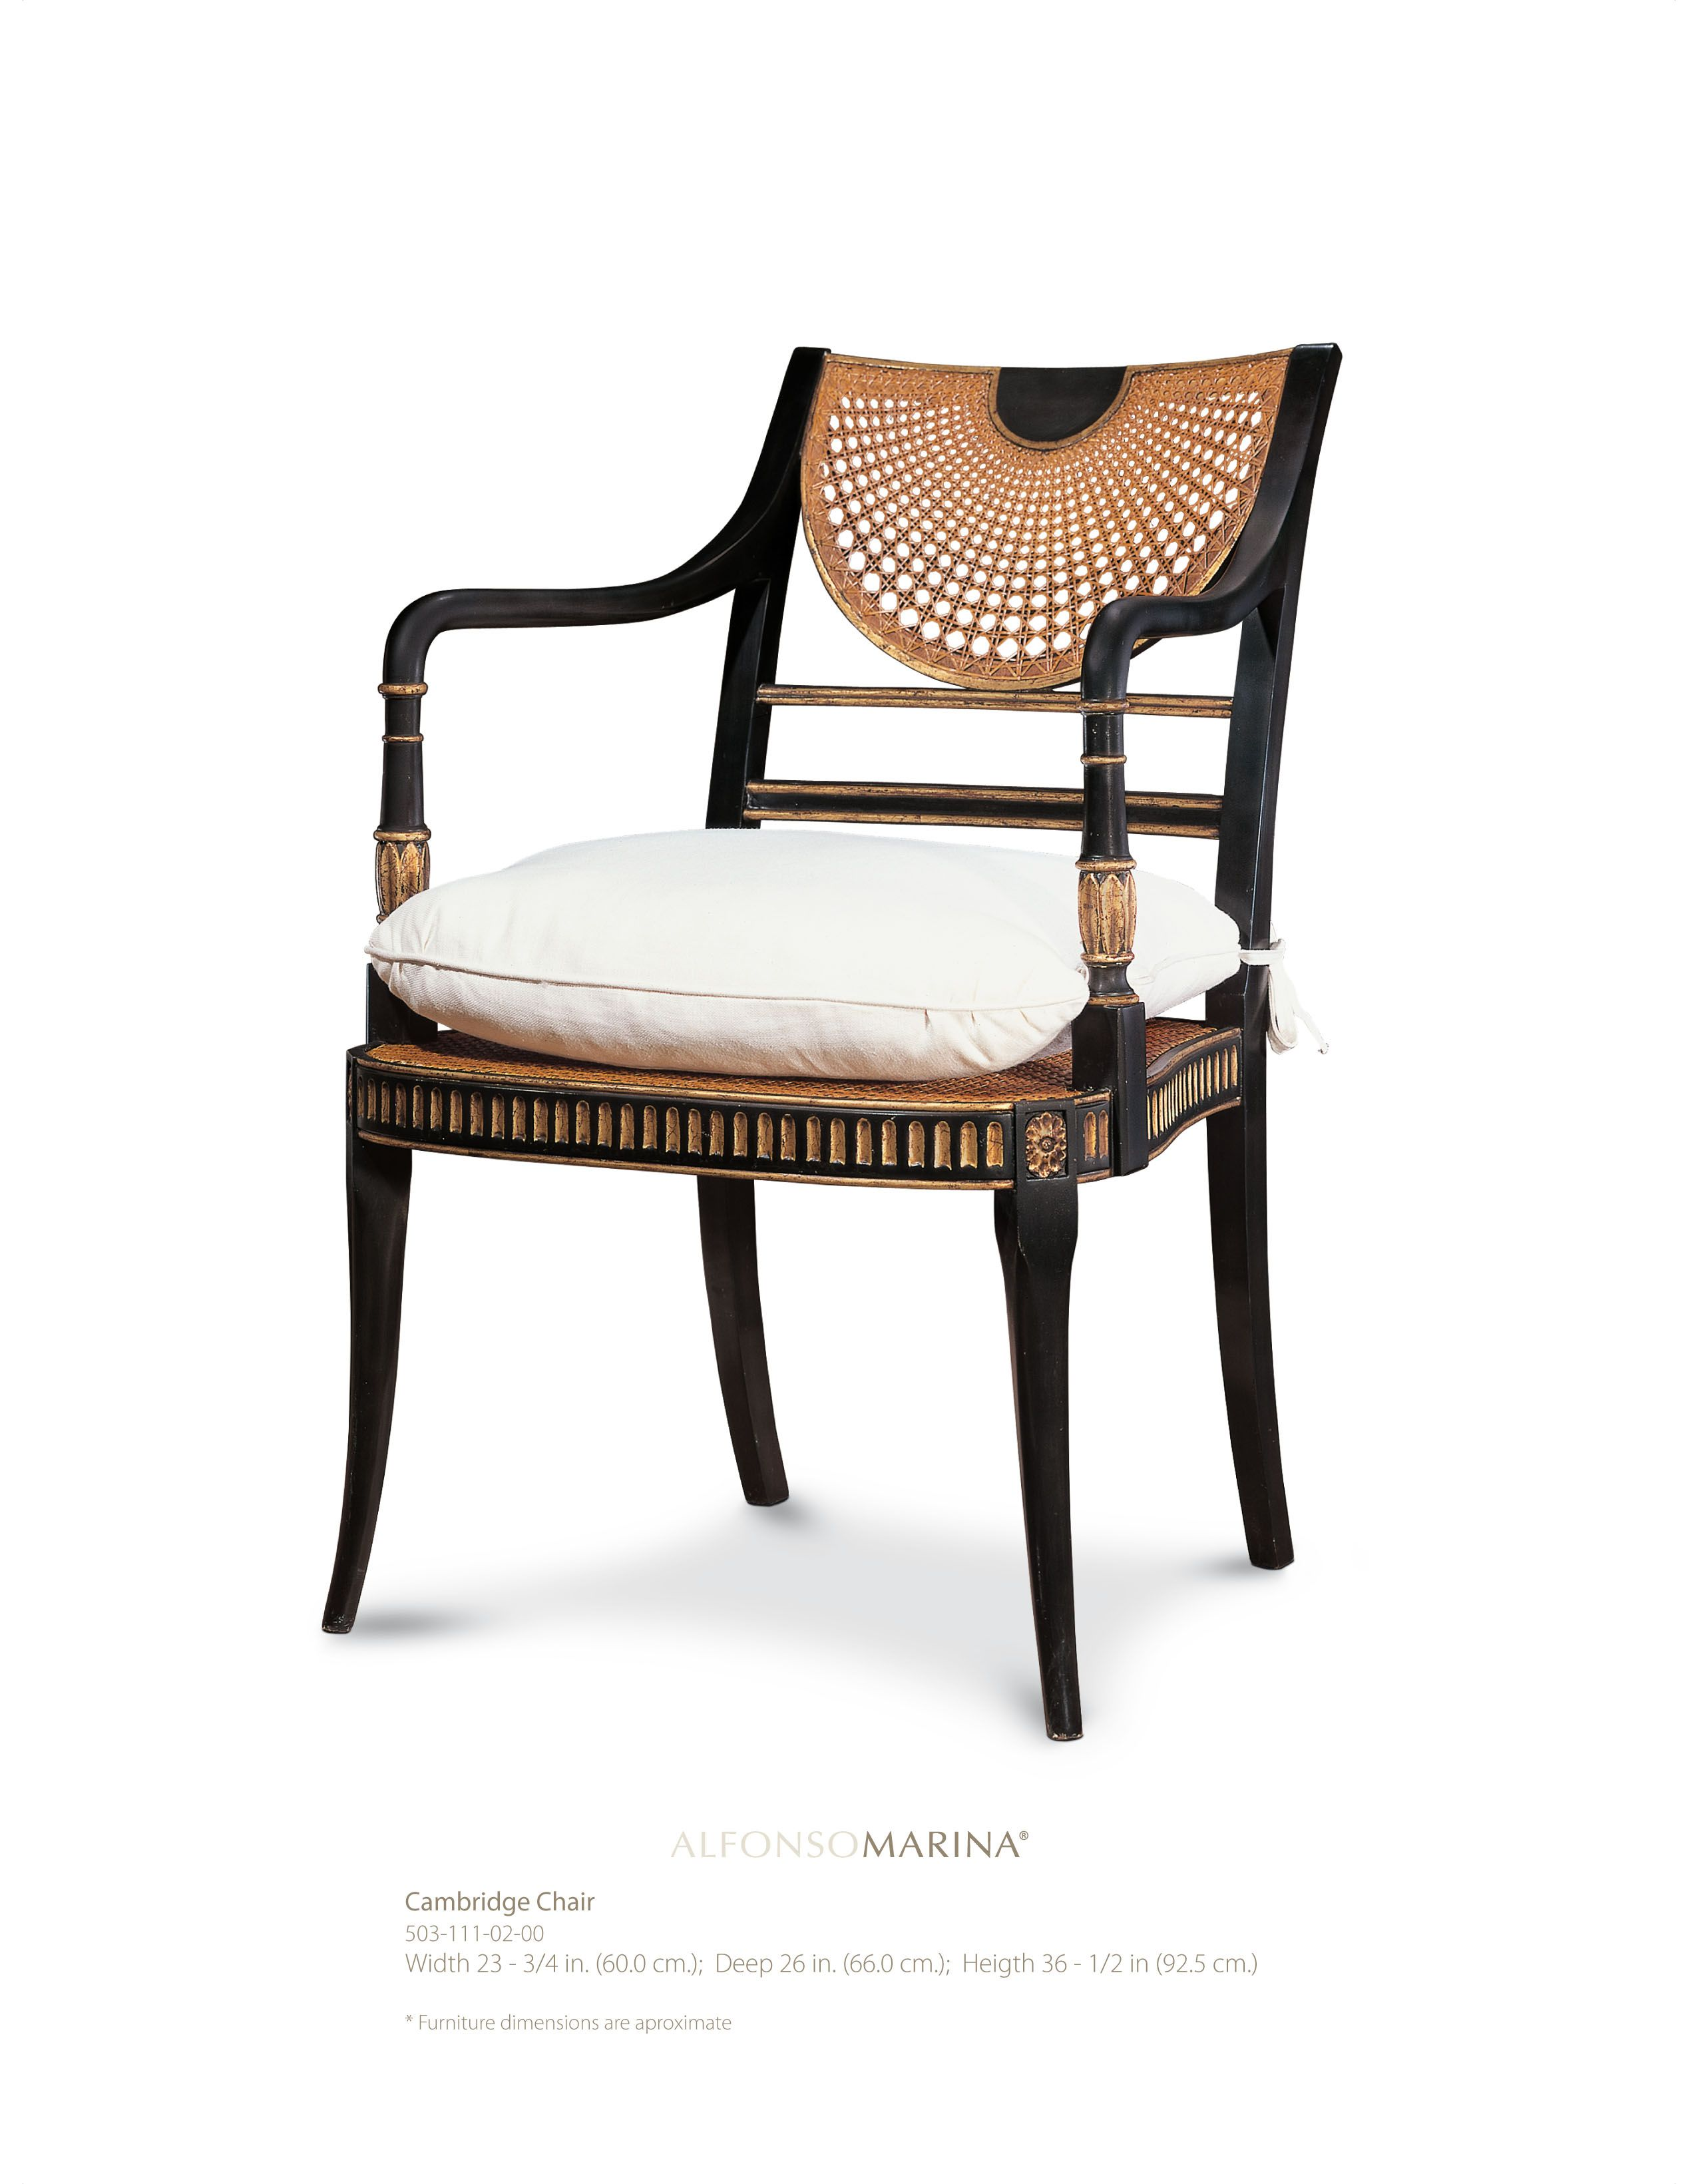 Cambridge Chair By Alfonso Marina Ebanista Armchair Furniture Furniture Dining Chairs Carved Furniture